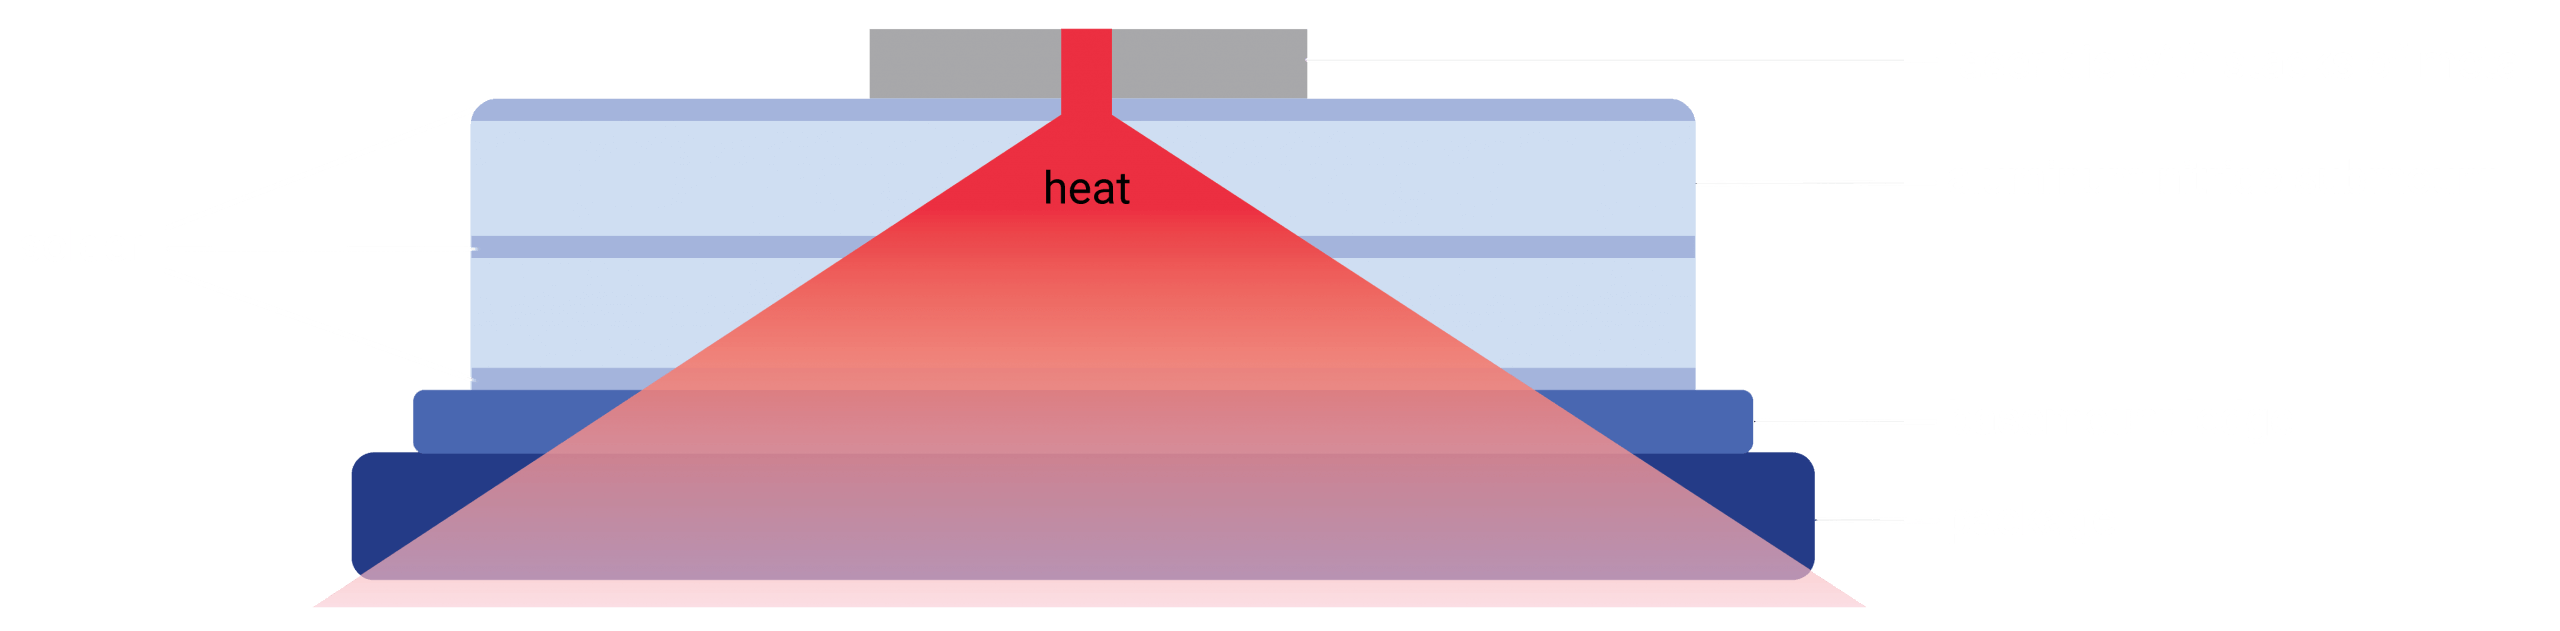 LEO article heat diagram